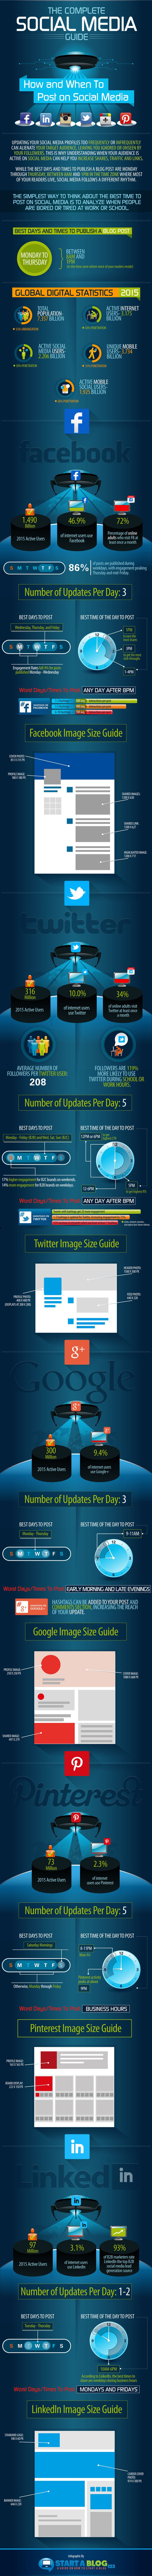 The complete Social Media guide #INFOGRAPHIC #SOCIALMEDIA